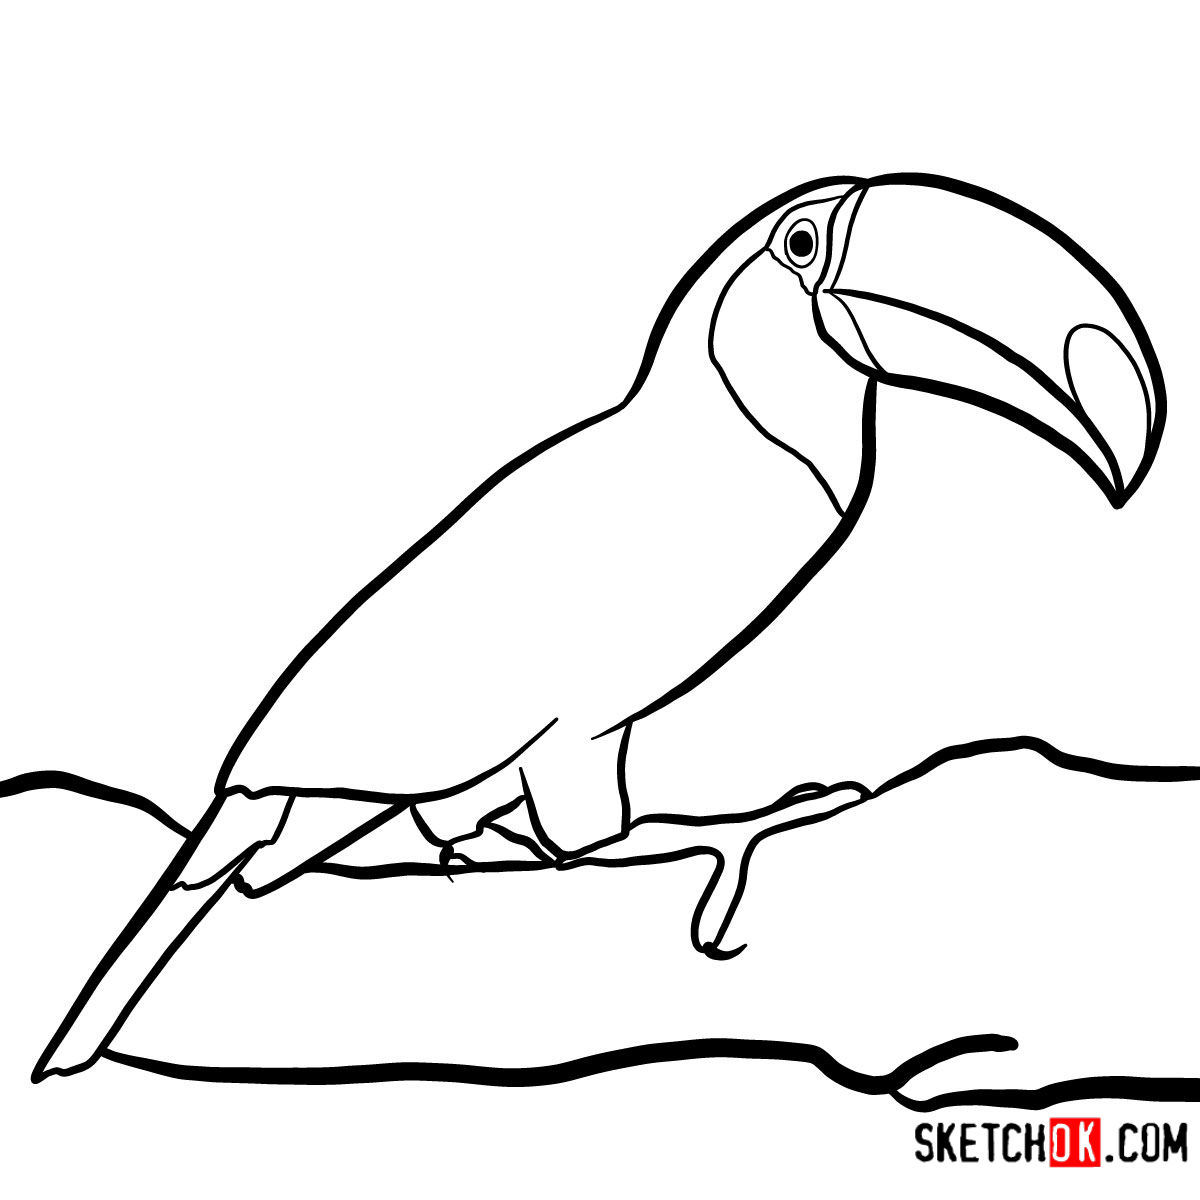 How To Draw A Toucan Birds Step By Step Drawing Tutorials